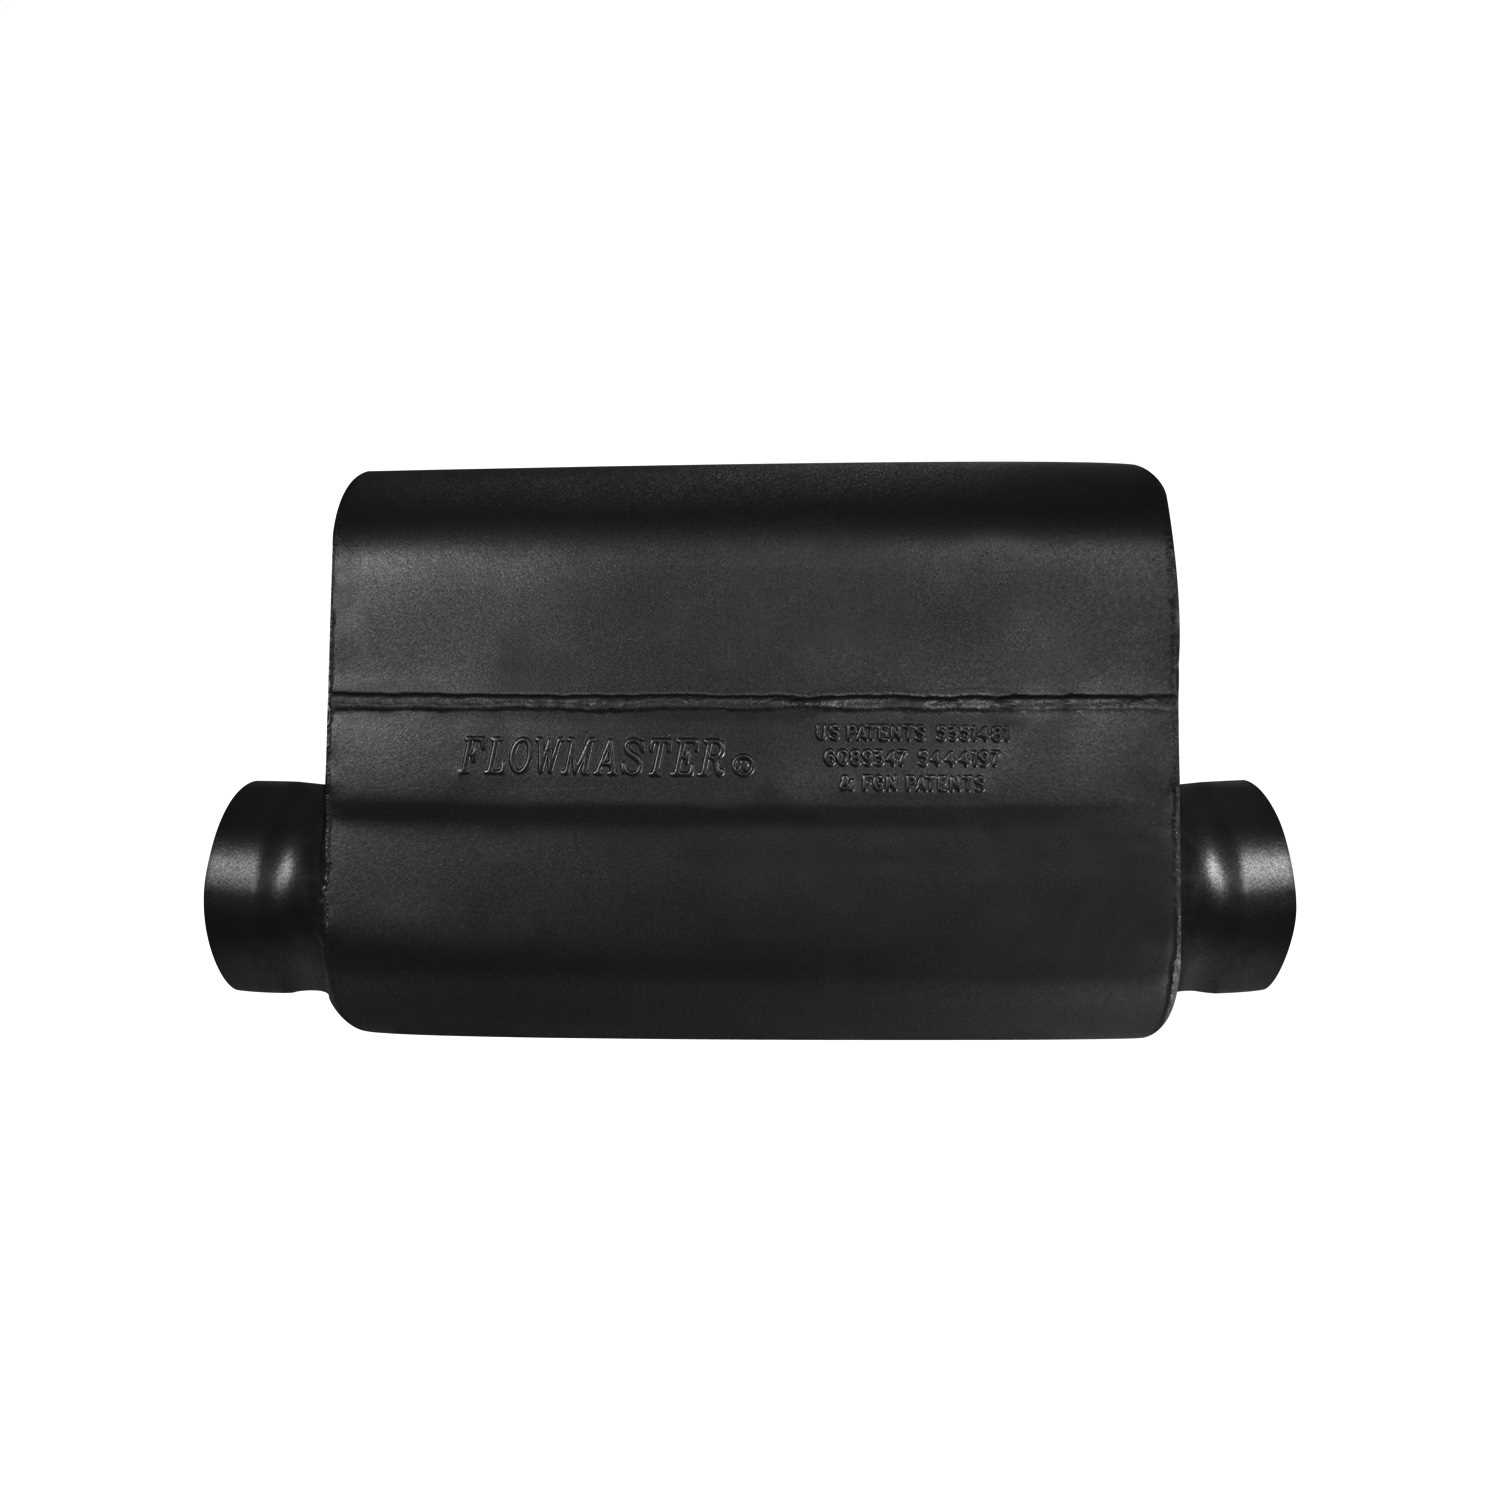 8435449 Flowmaster 40 Series™ Delta Force Race Muffler